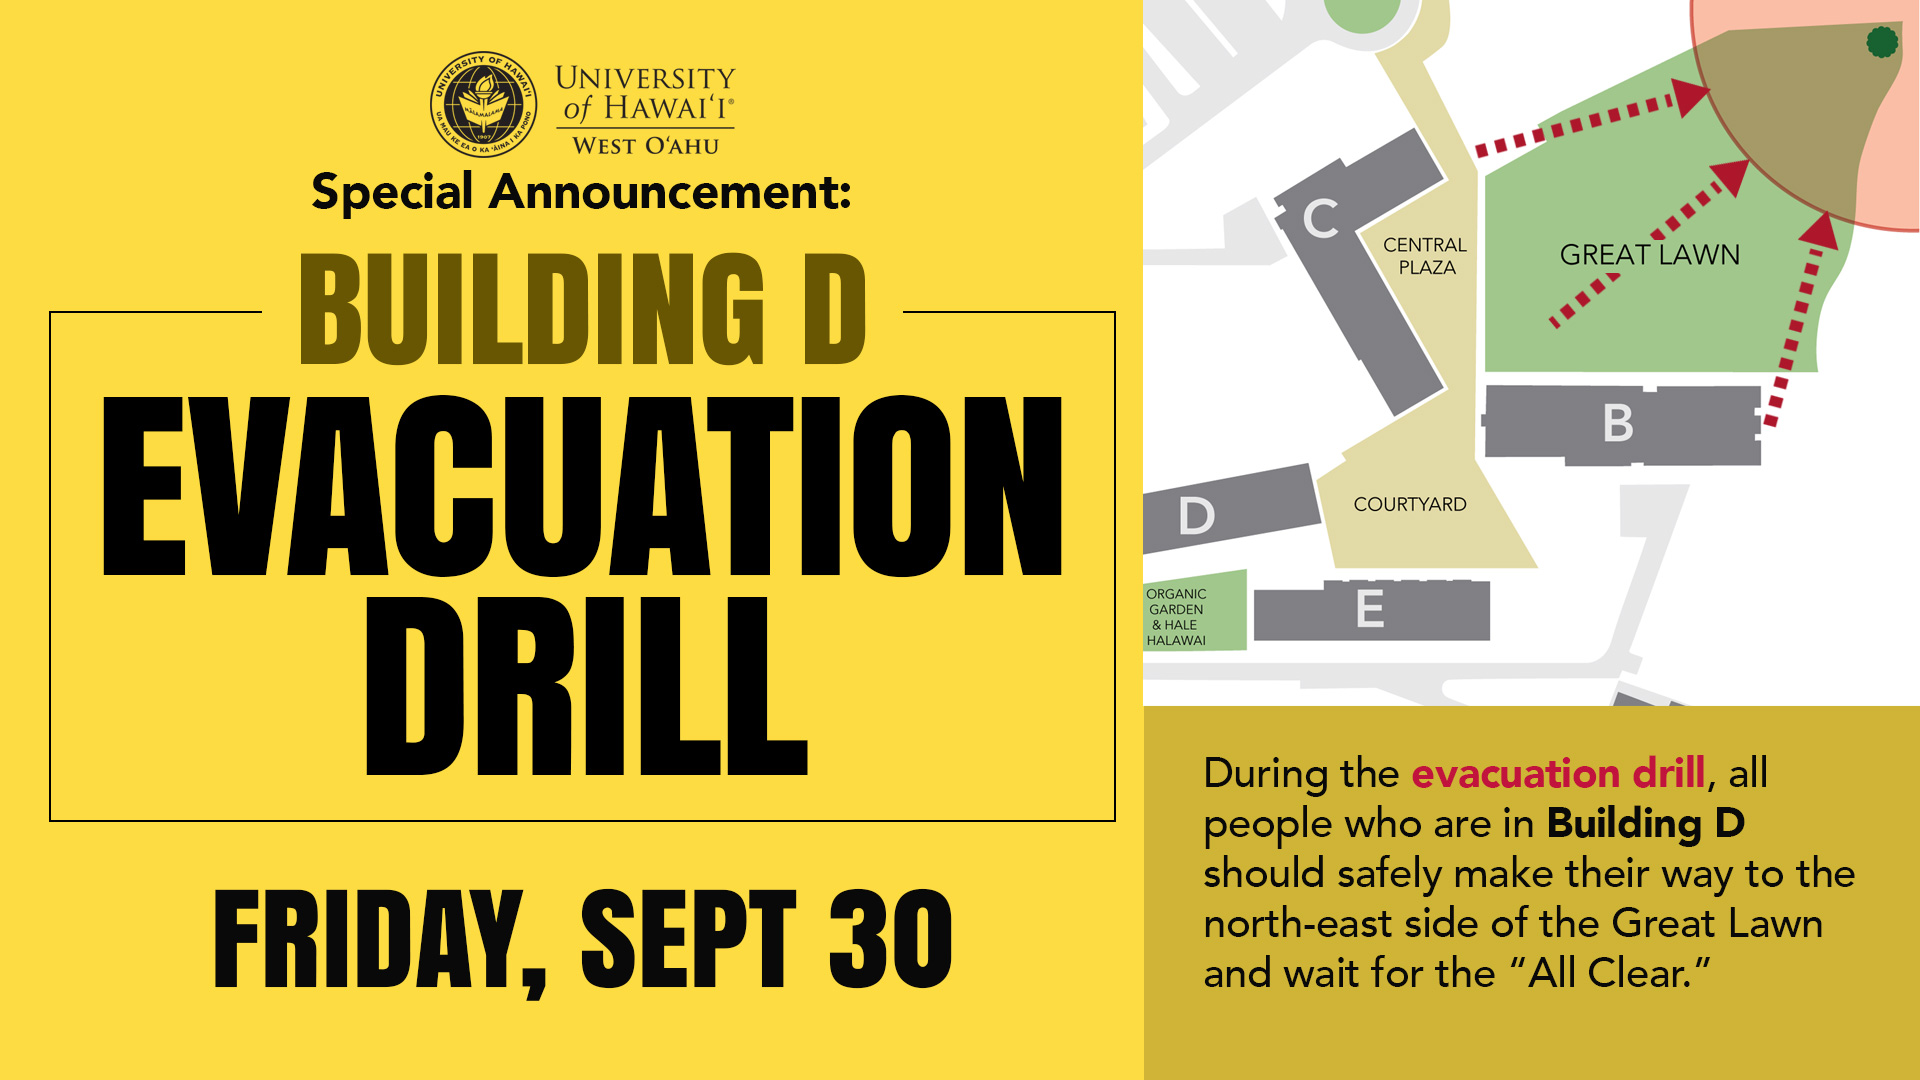 Evacuation Drill in Building D on Sept. 30, 2016